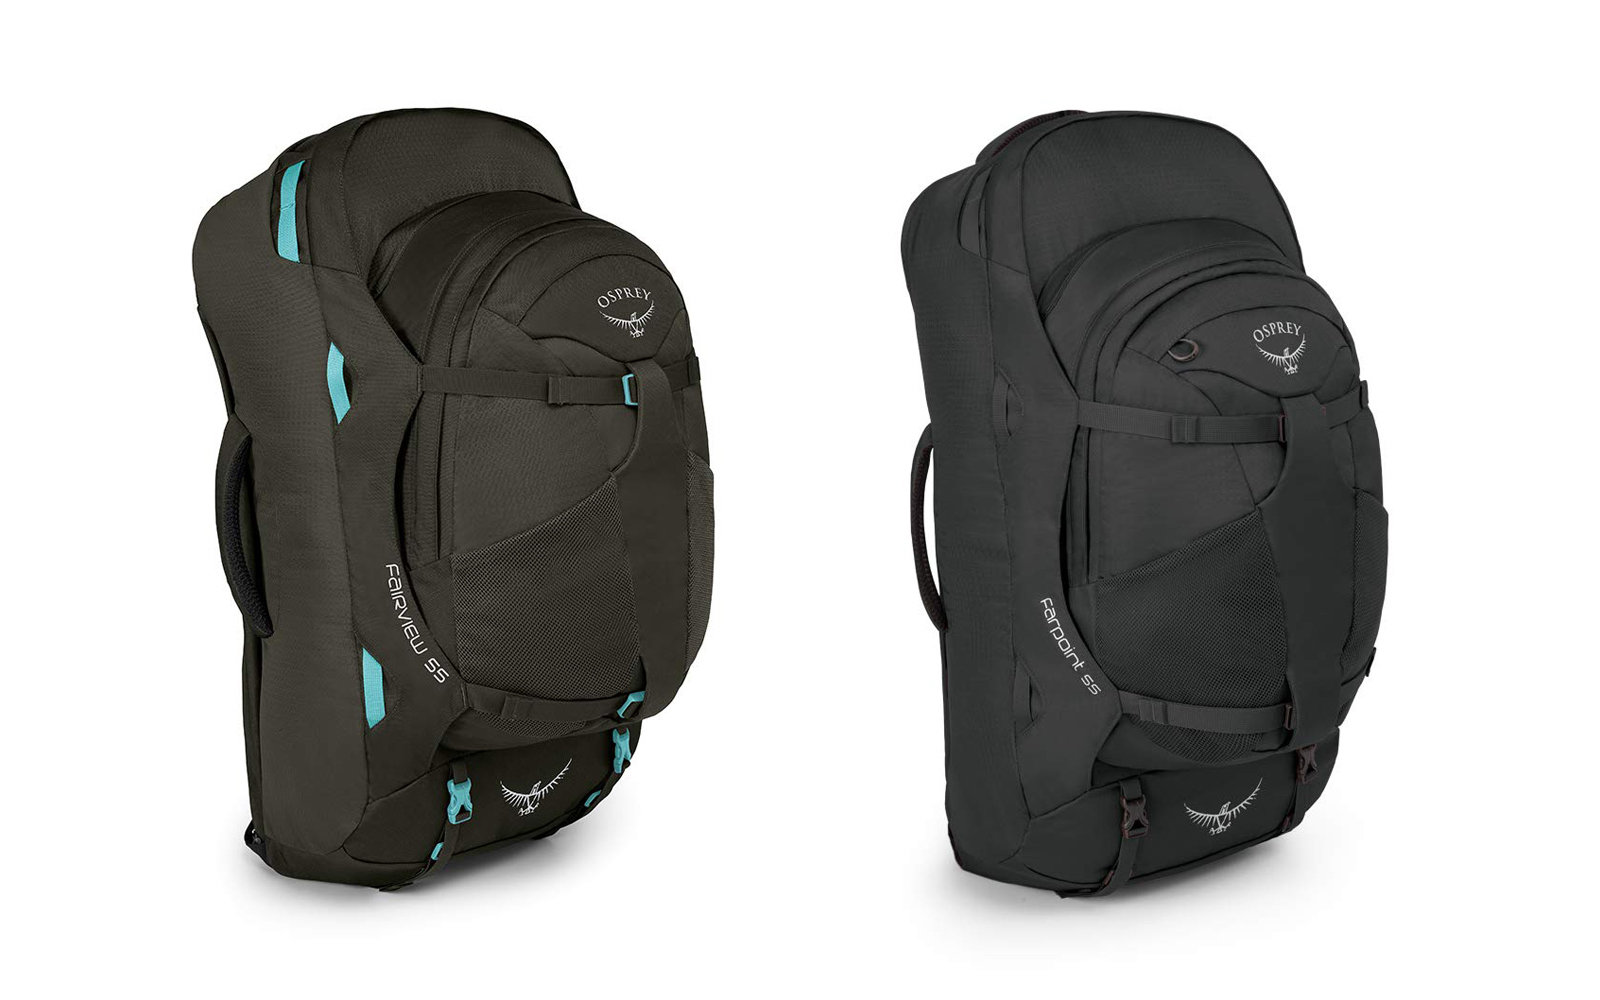 Osprey Farpoint and Fairview